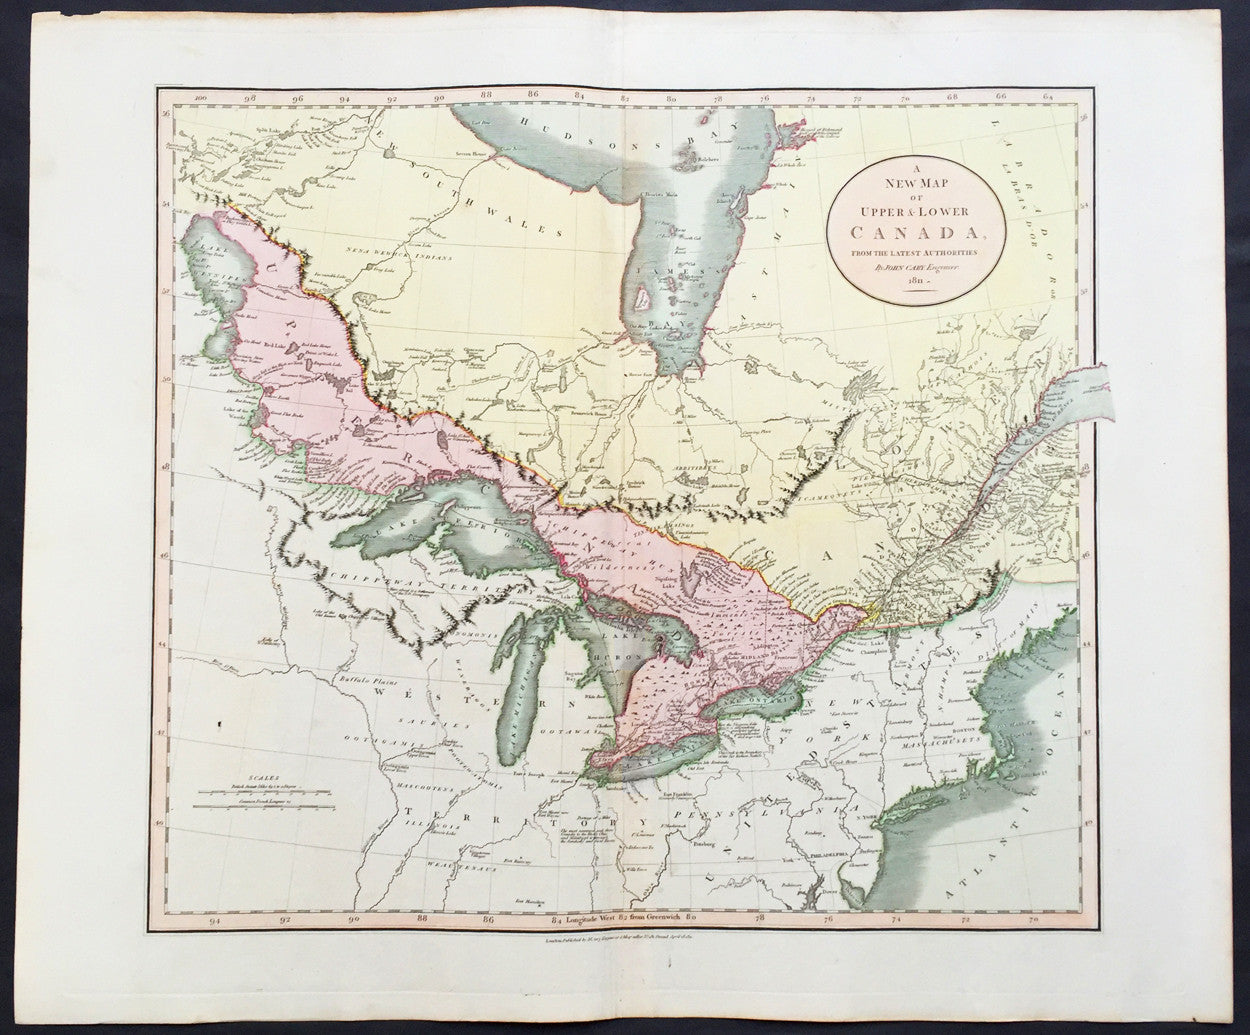 1811 John Cary Large Old, Antique Map of The Great Lakes of North America